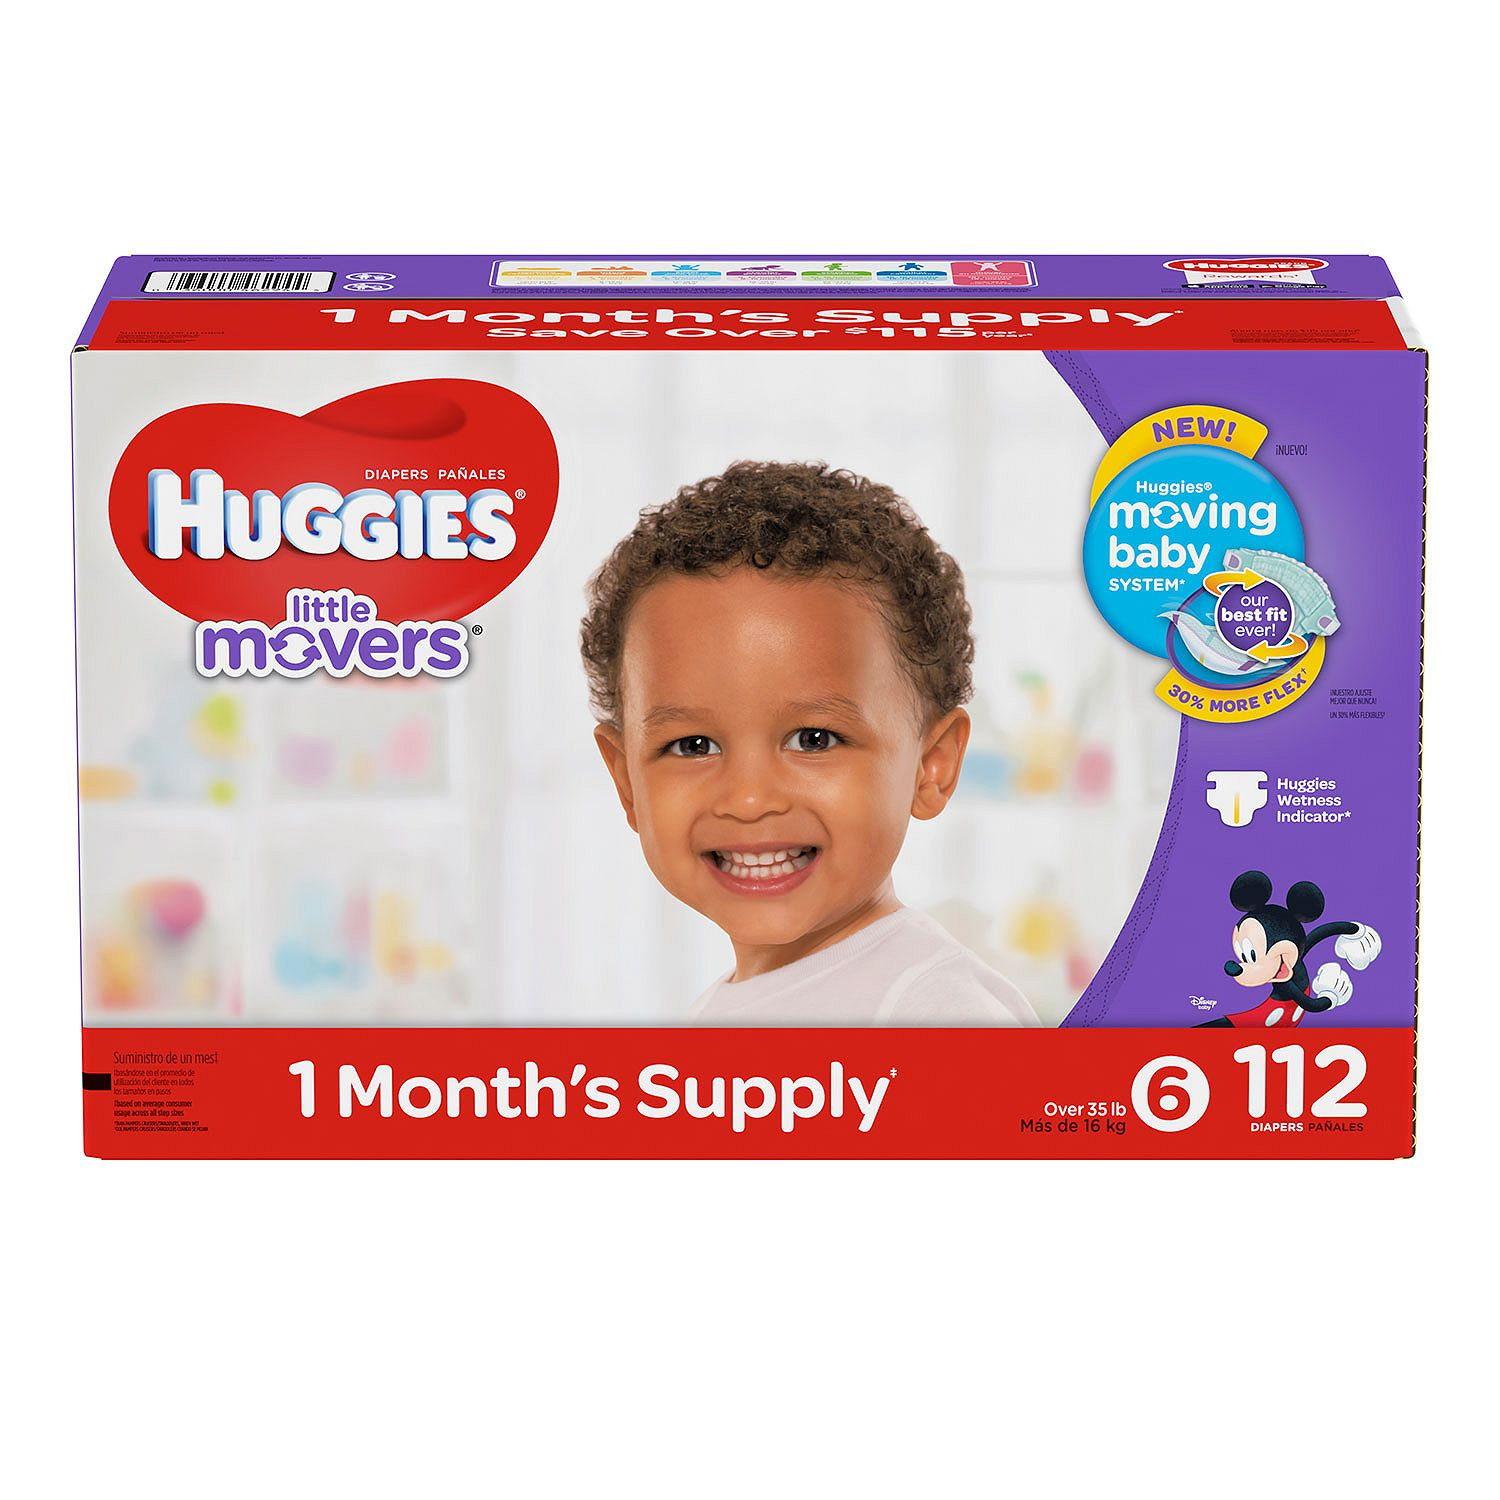 Huggies Little Movers Diapers Size 6 112 ct. ( Weight Over 35 lbs.) Bulk Qty, Free Shipping Comfortable, Soft,... by Branded Diapers